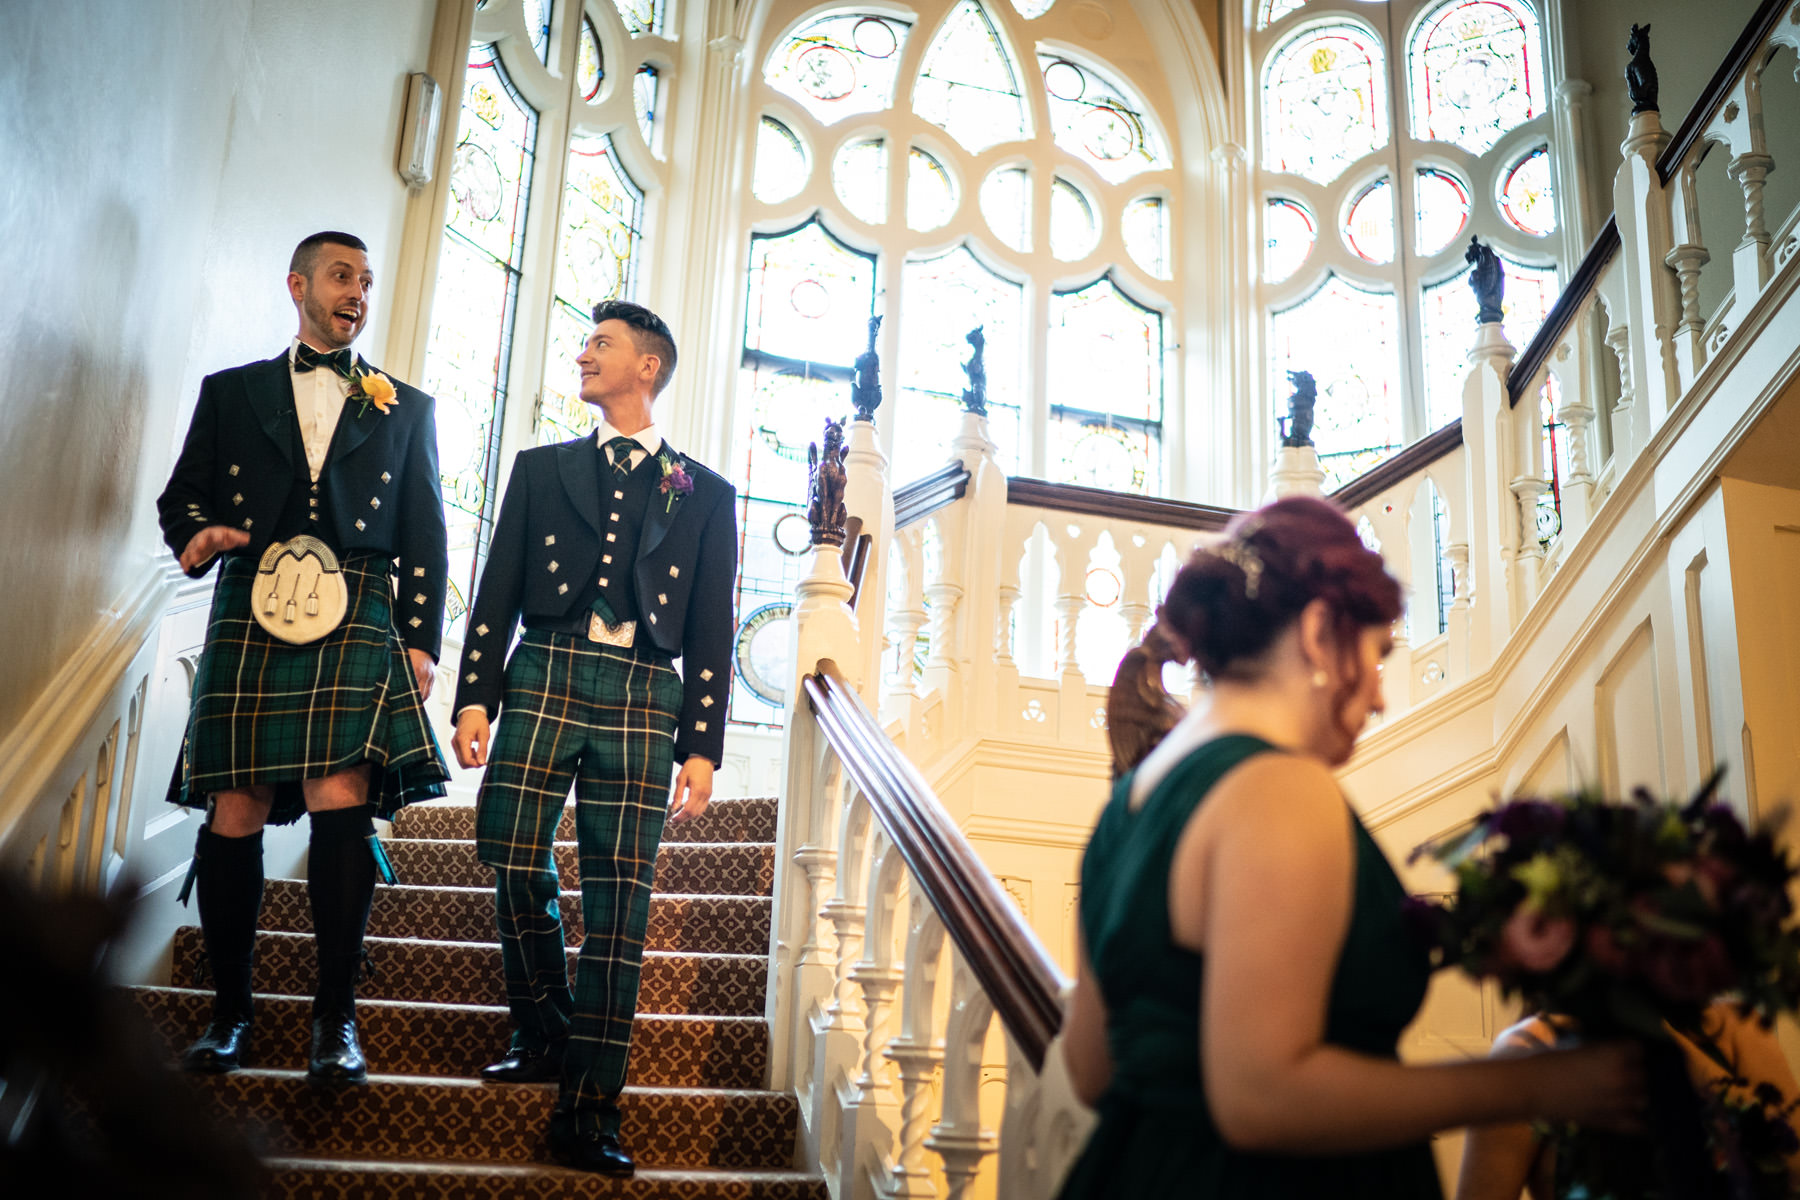 Two Grooms in Kilts descend the spiral stairs at The Elvetham Hotel